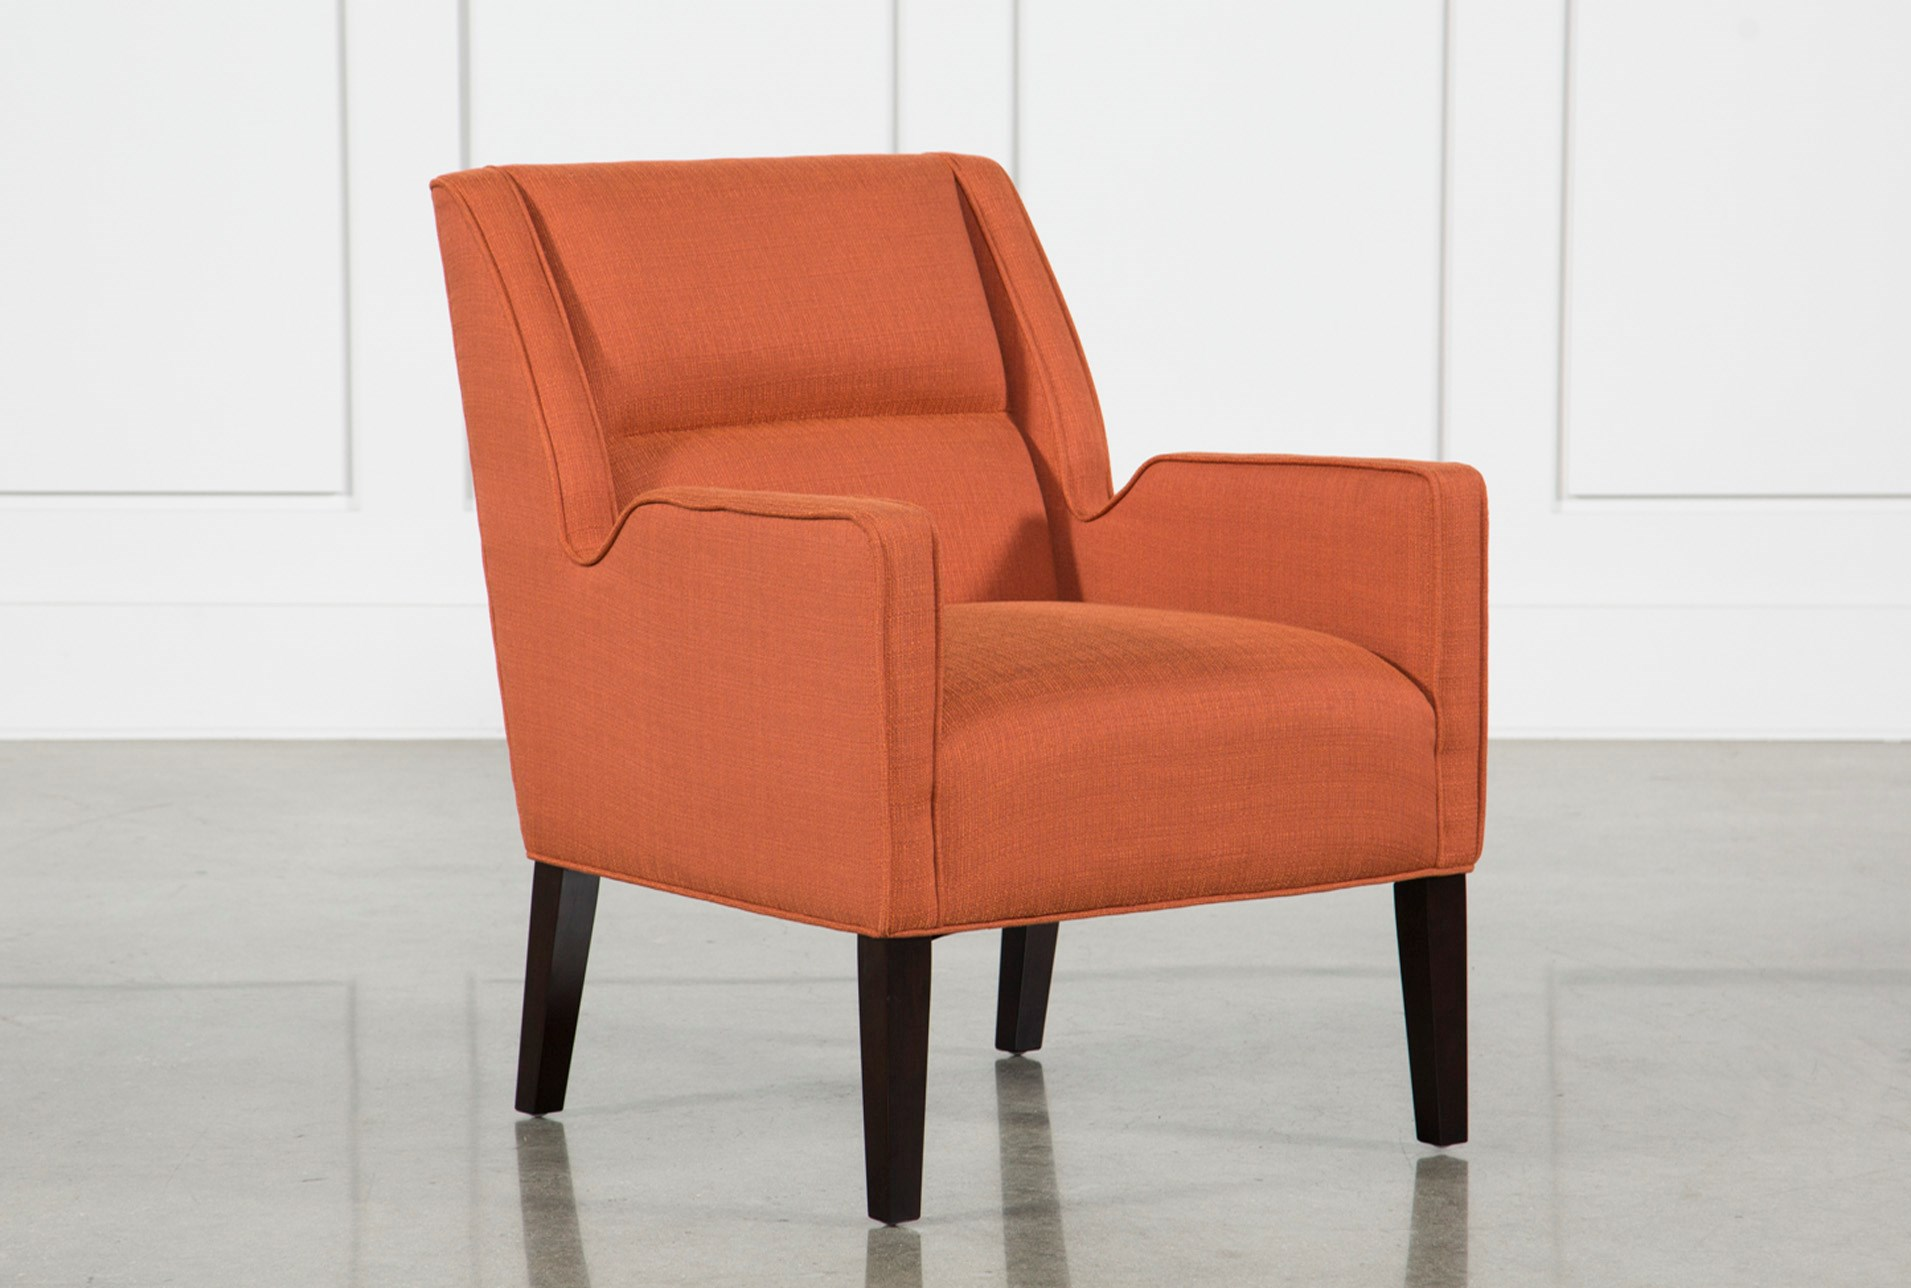 Reid orange accent chair qty 1 has been successfully added to your cart